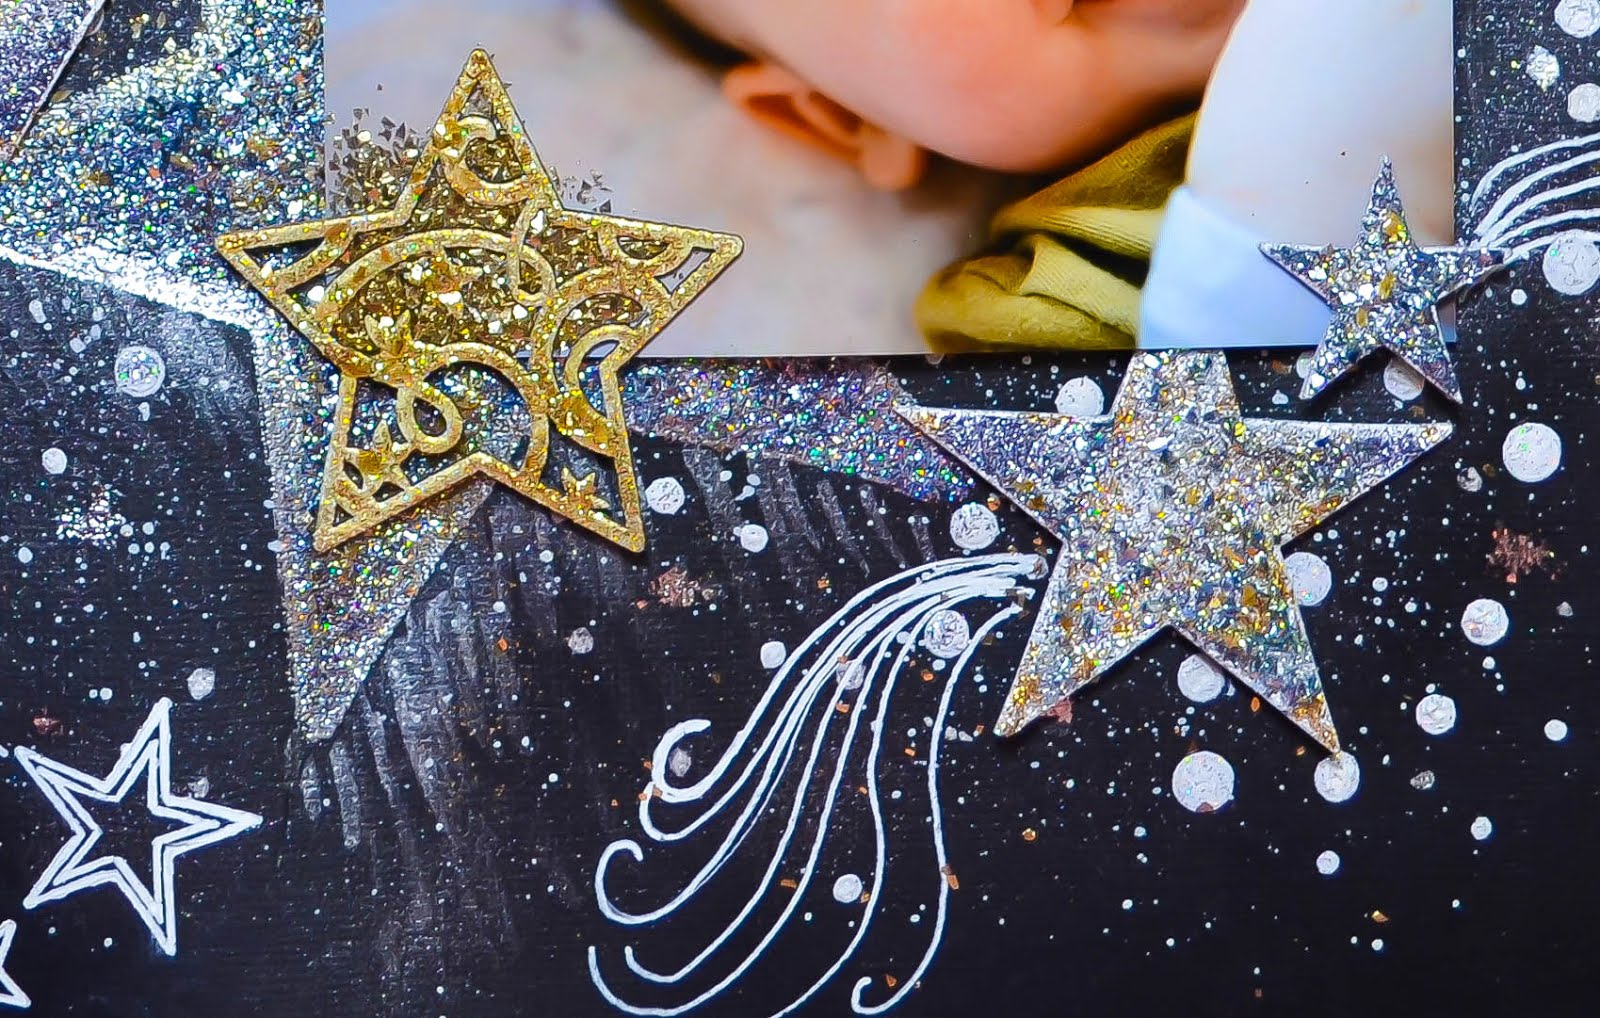 How to delete scrapbook photos google+ - Scrapbook Layout Challenge Black Cardstock Background With Stars Mixed Media With Heat Embossed Chipboard